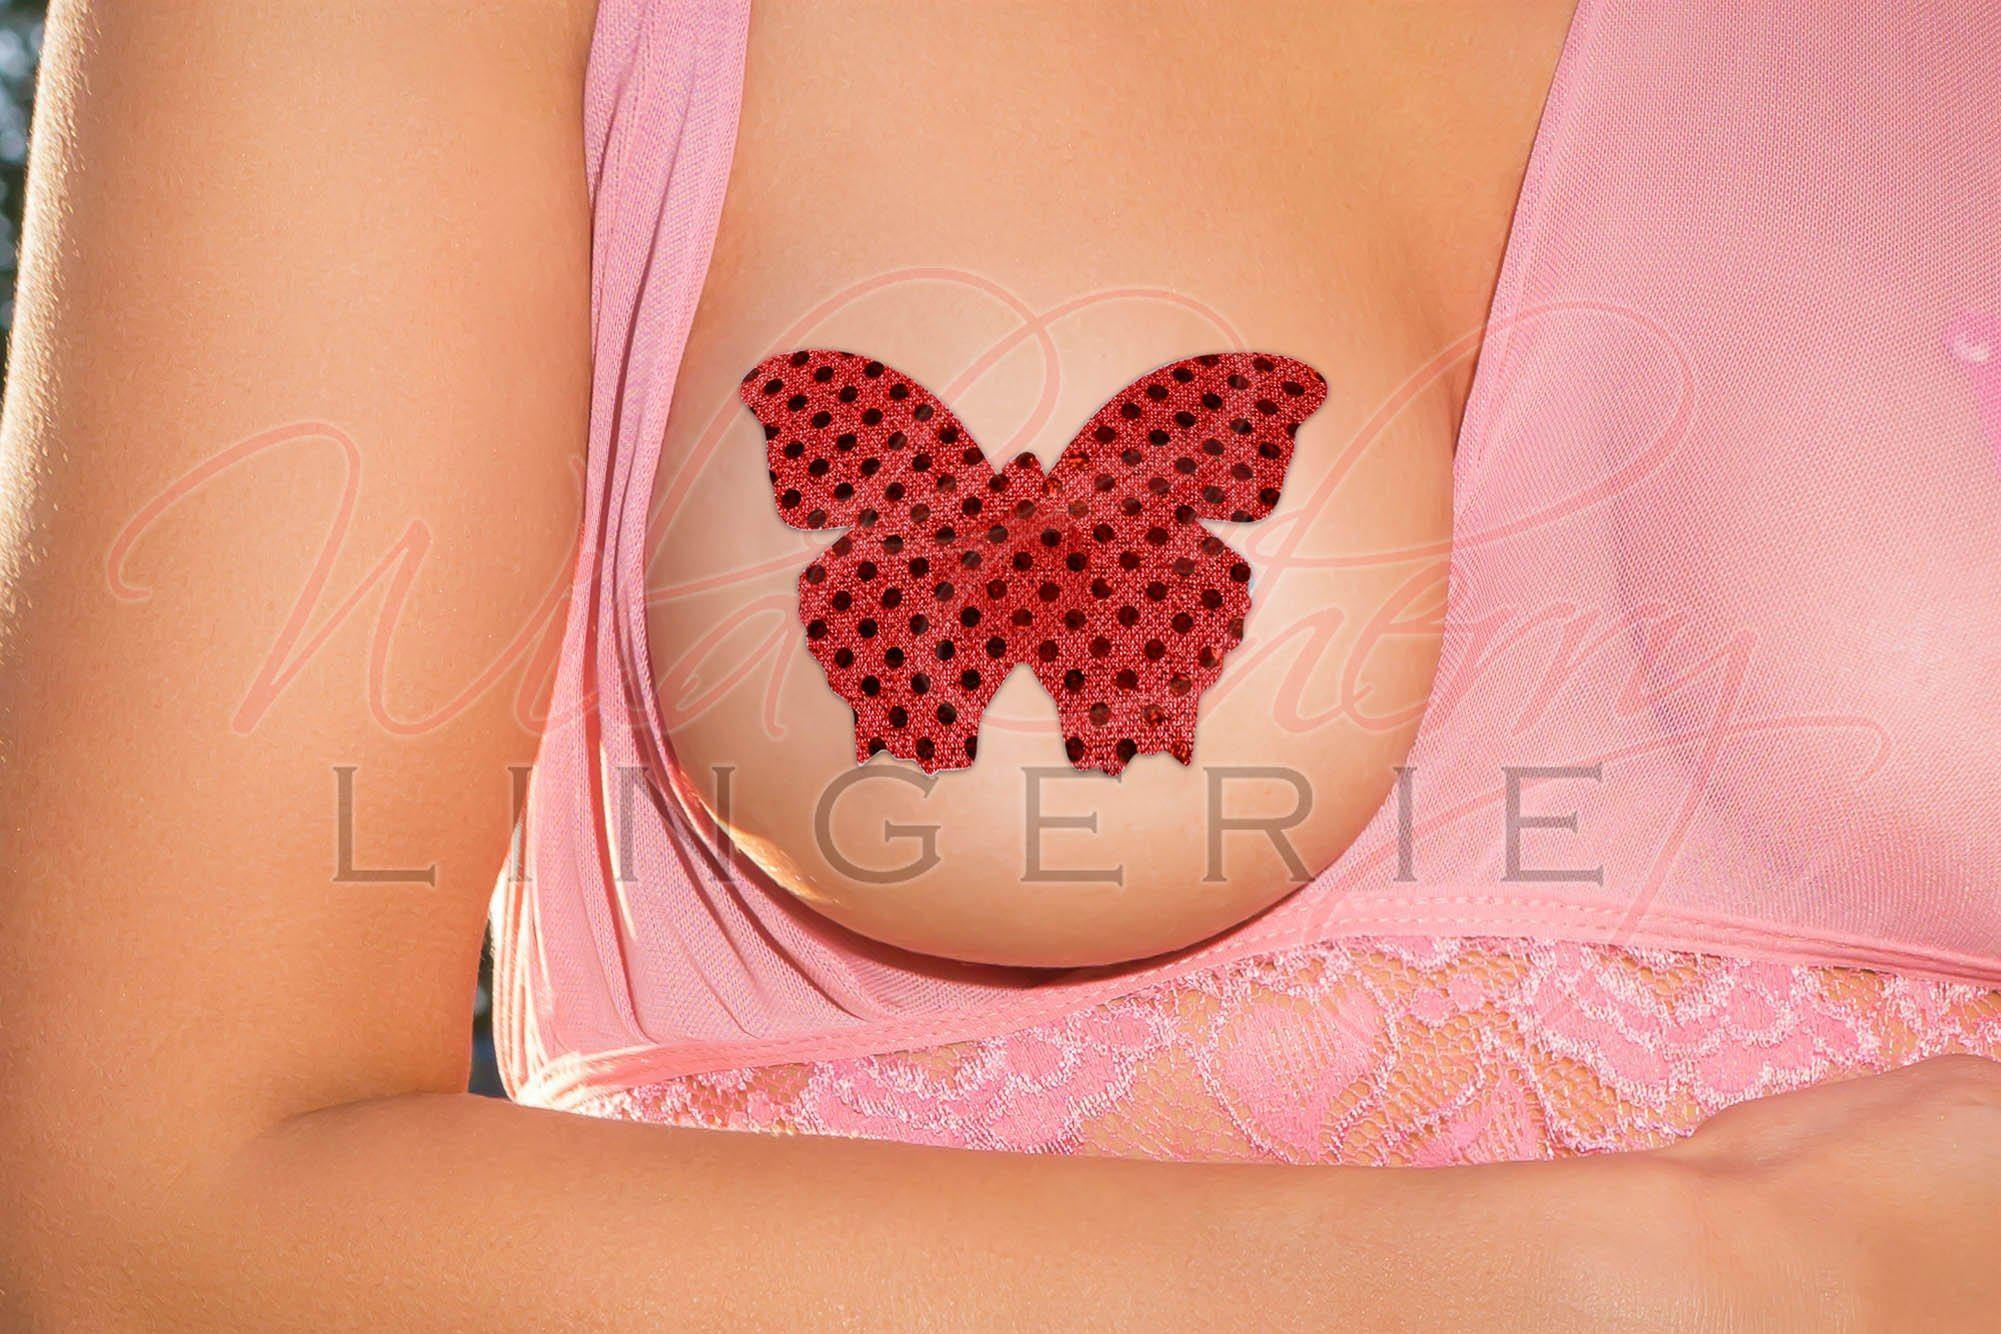 Butterfly Nipple Covers, Accessories, Wild Cherry Lingerie - Wild Cherry Lingerie